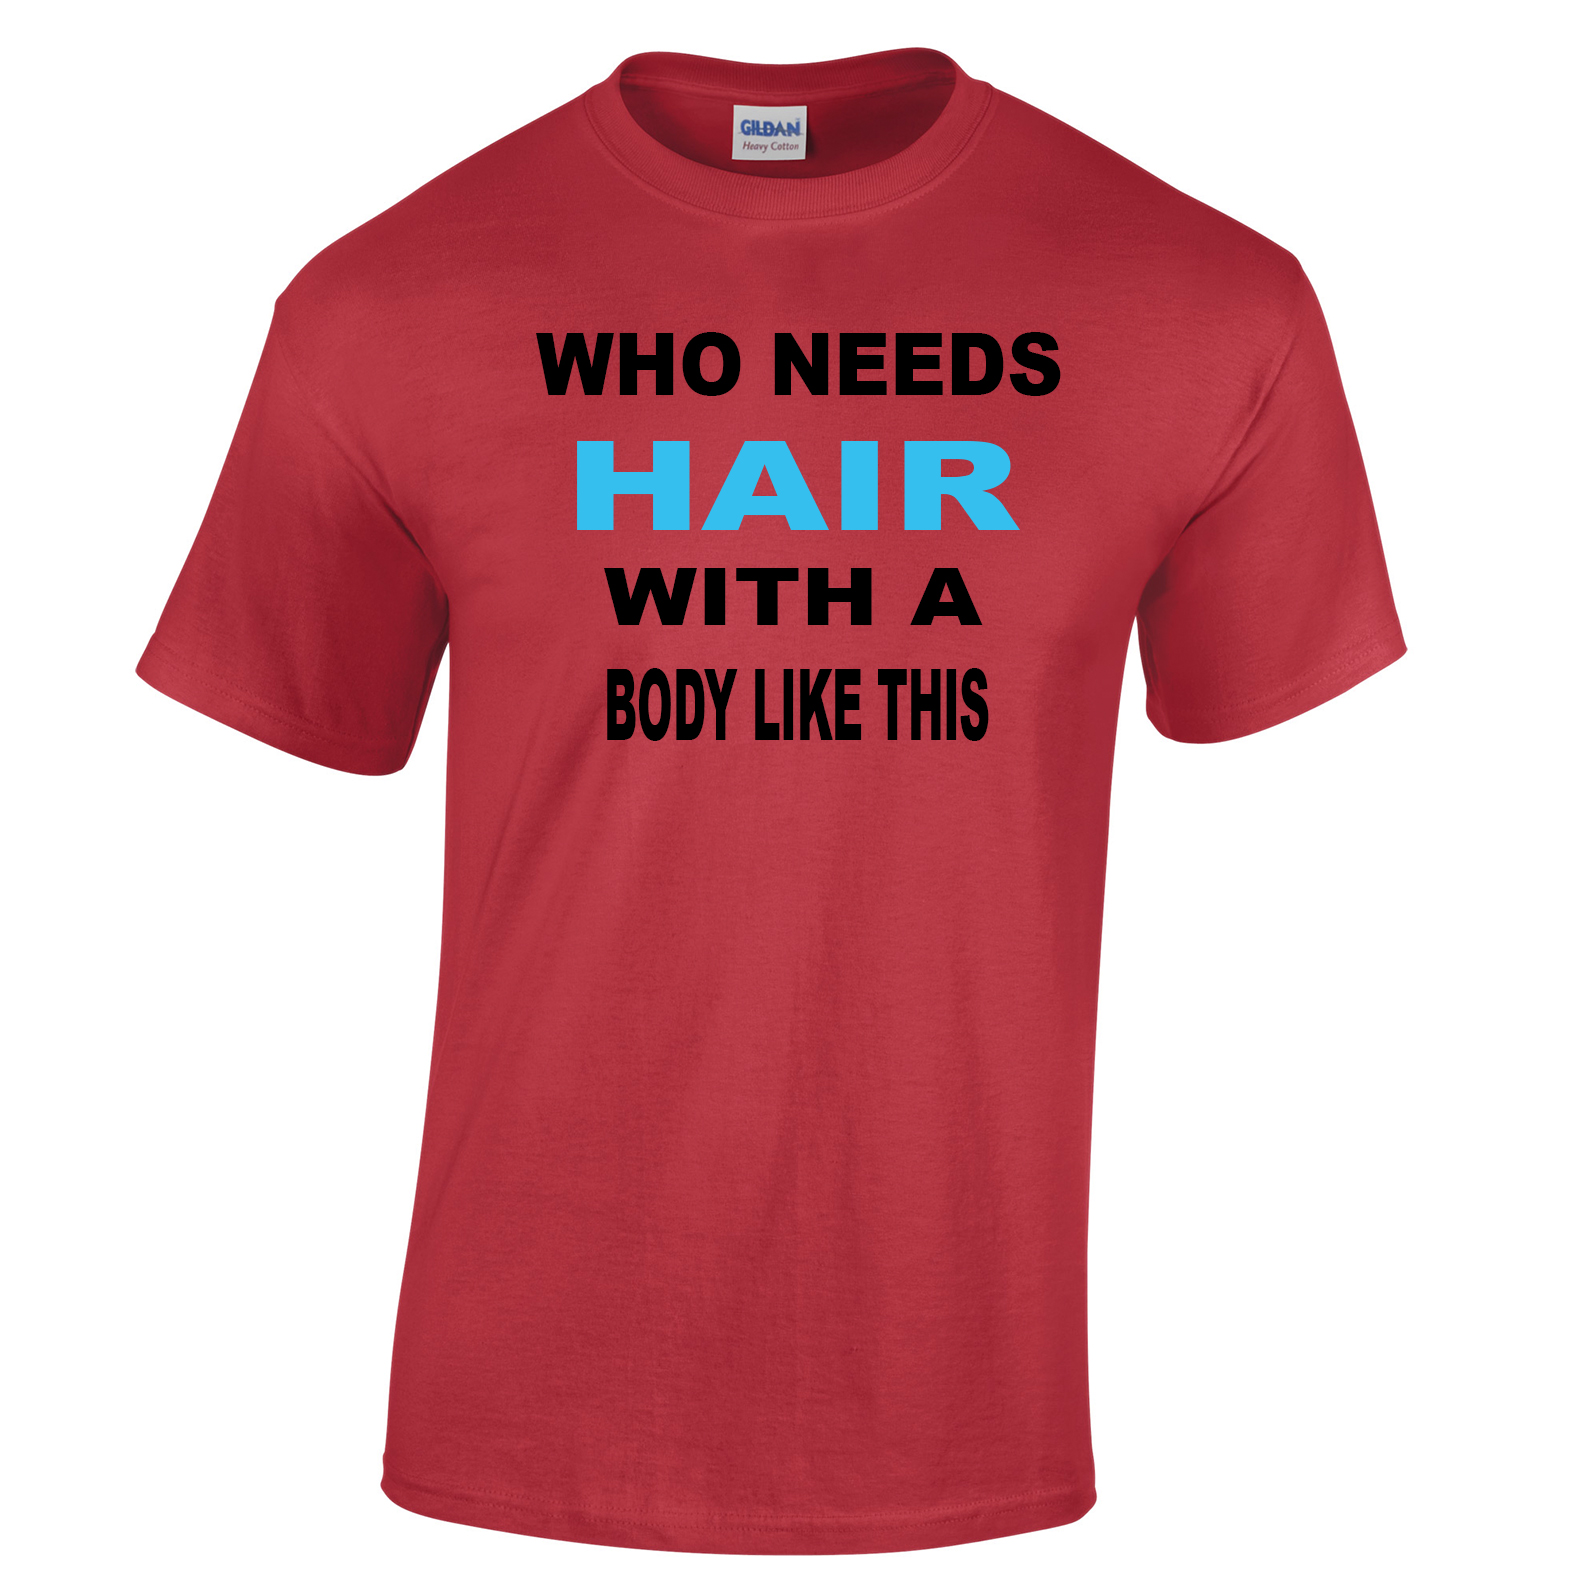 HAIR, T SHIRT WHO NEEDS HAIR WITH A BODY LIKE THIS VERY FUNNY TOP QLTY XS-3XL